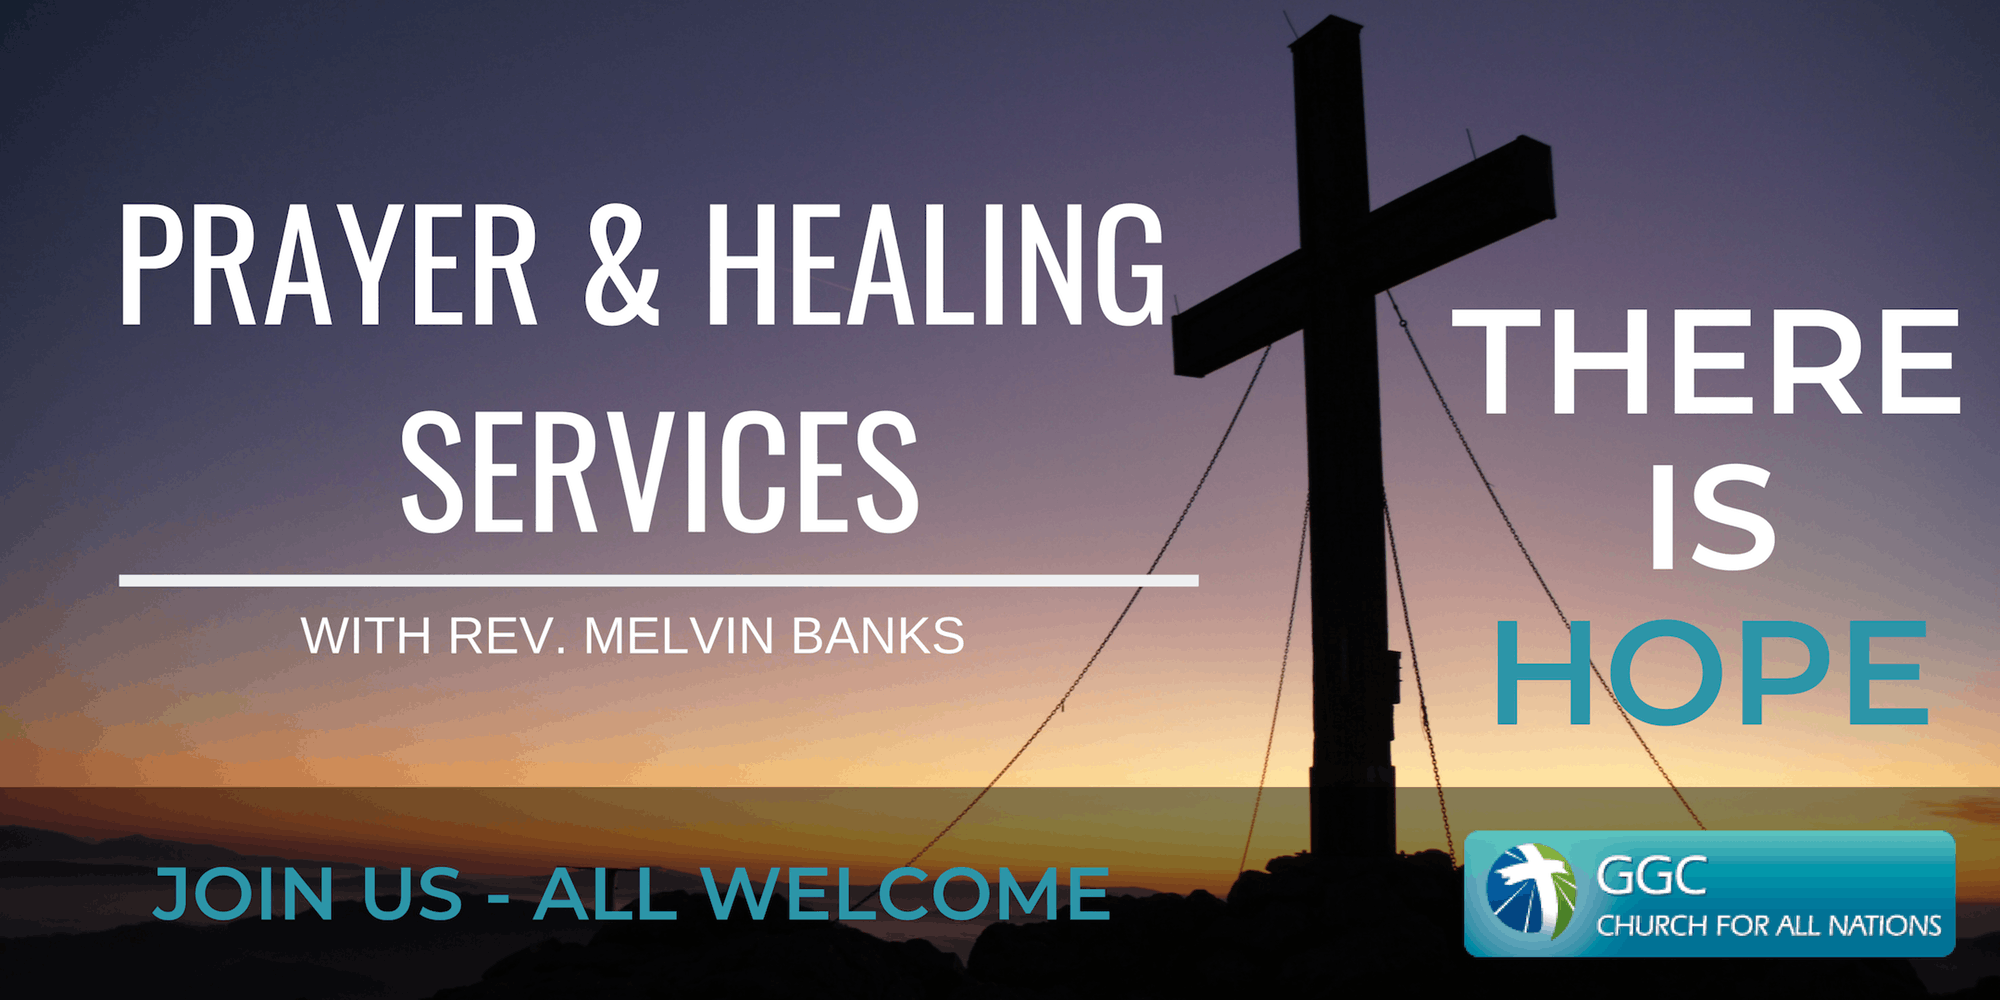 Prayer and Healing services